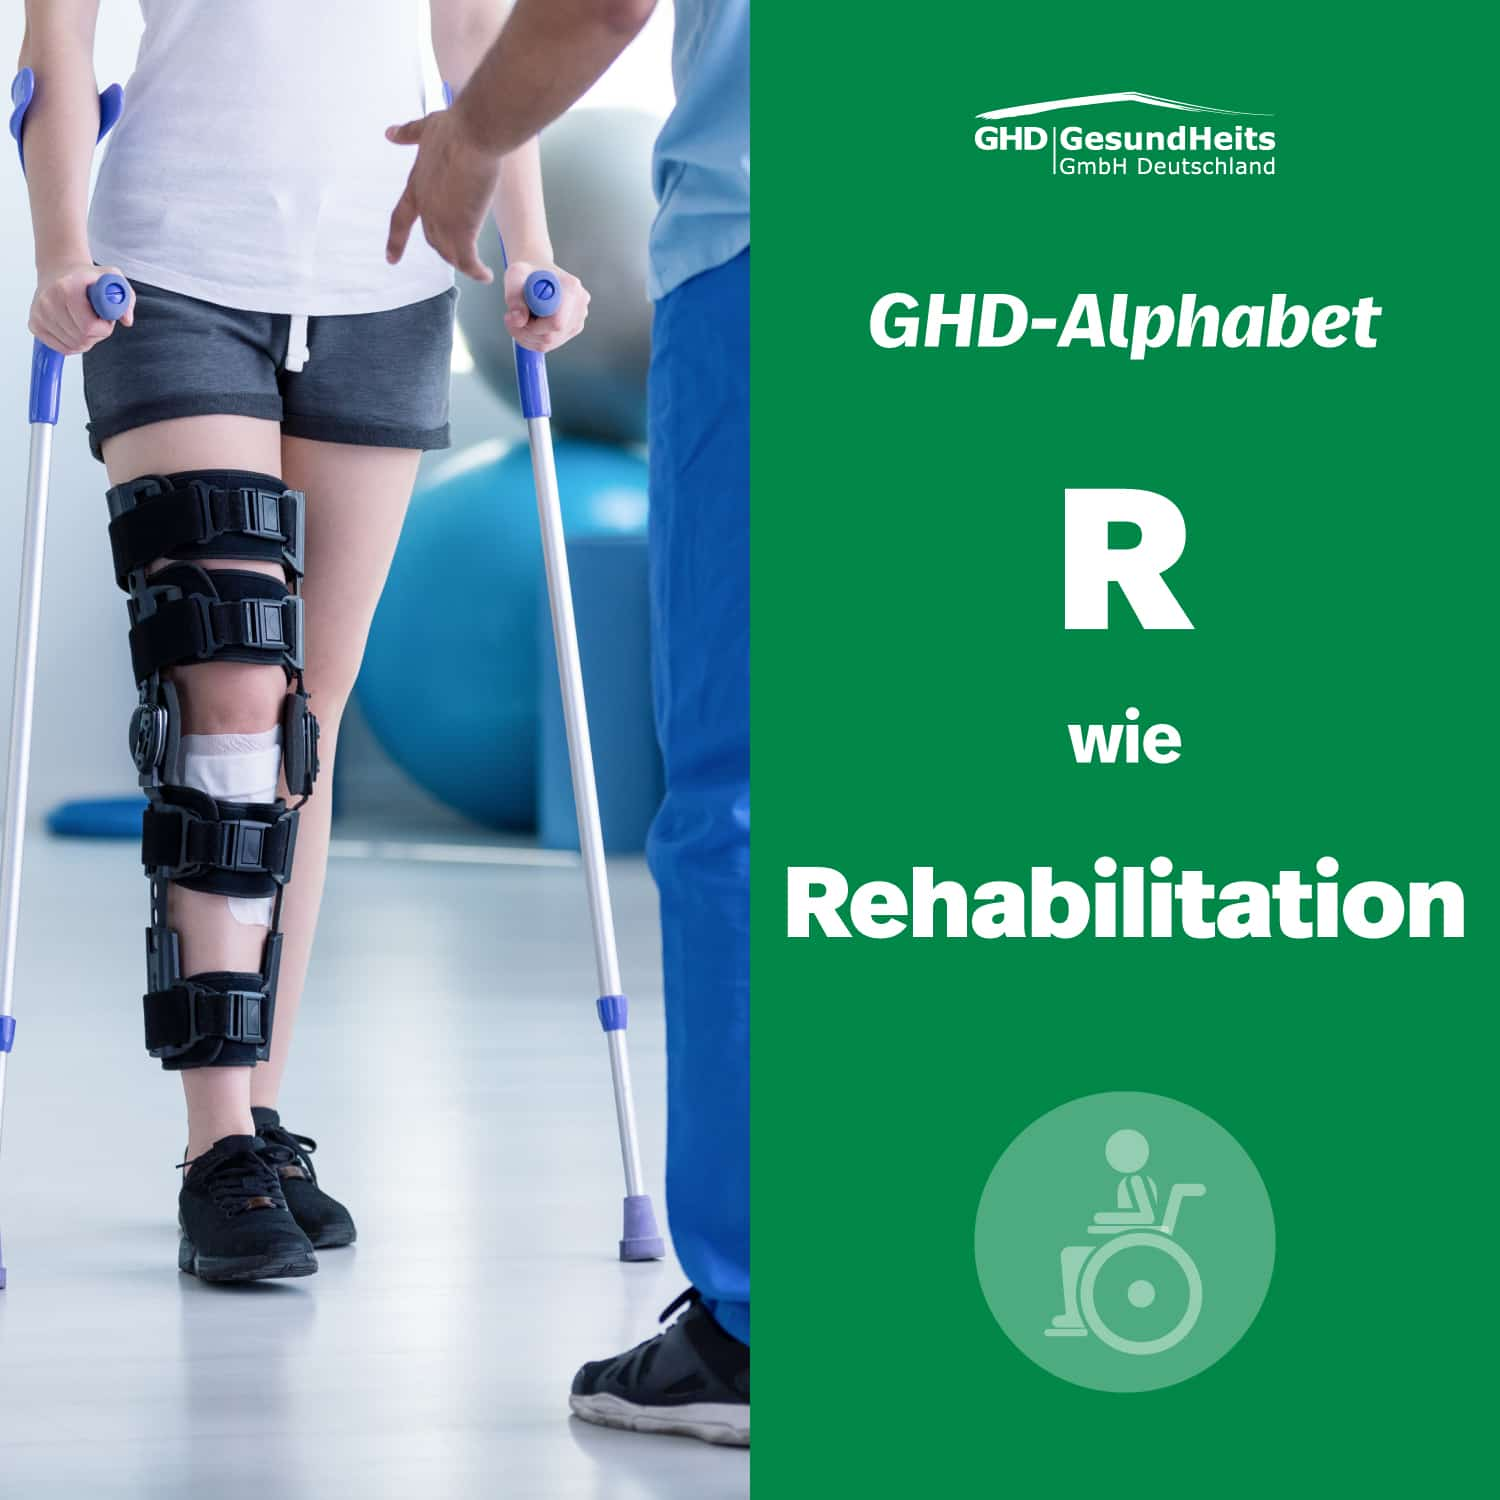 GHD-Alphabet_R-wie-Rehabilitation